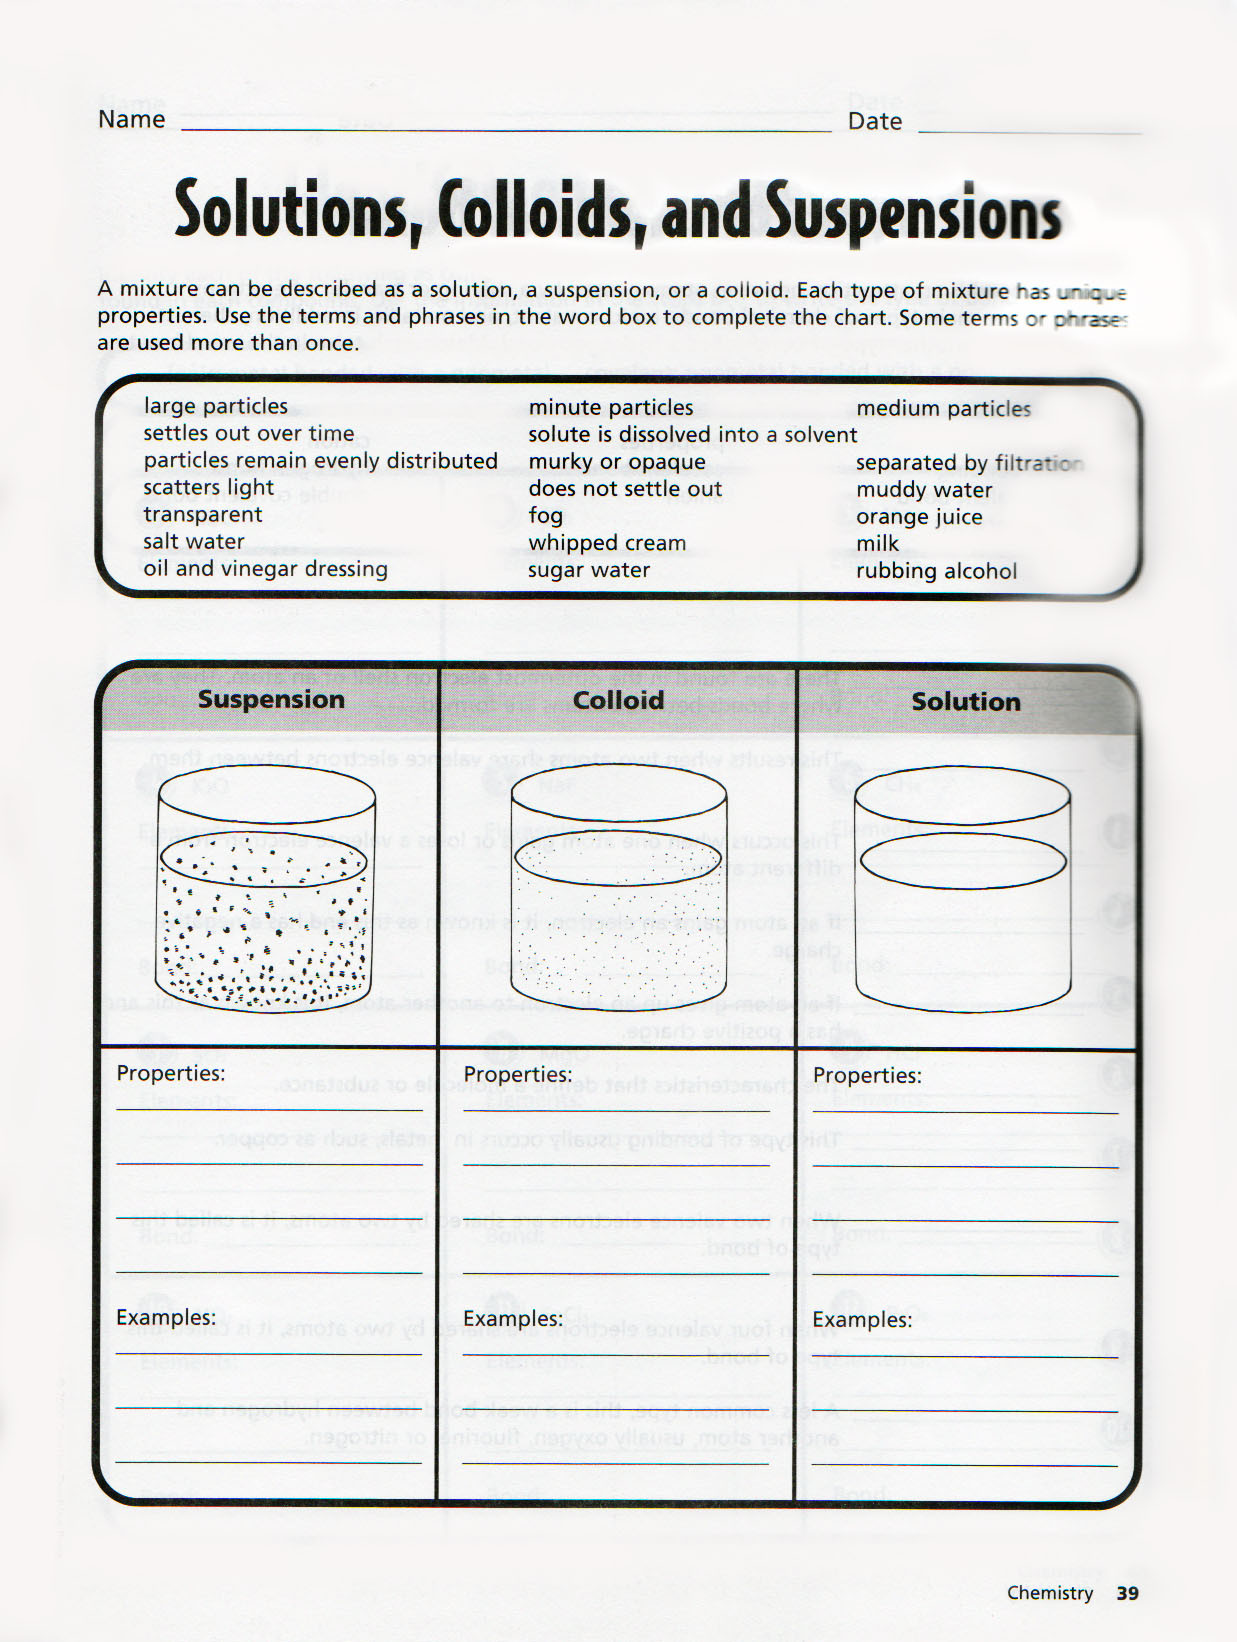 Solutions Colloids and Suspensions Worksheet tomasino S Class